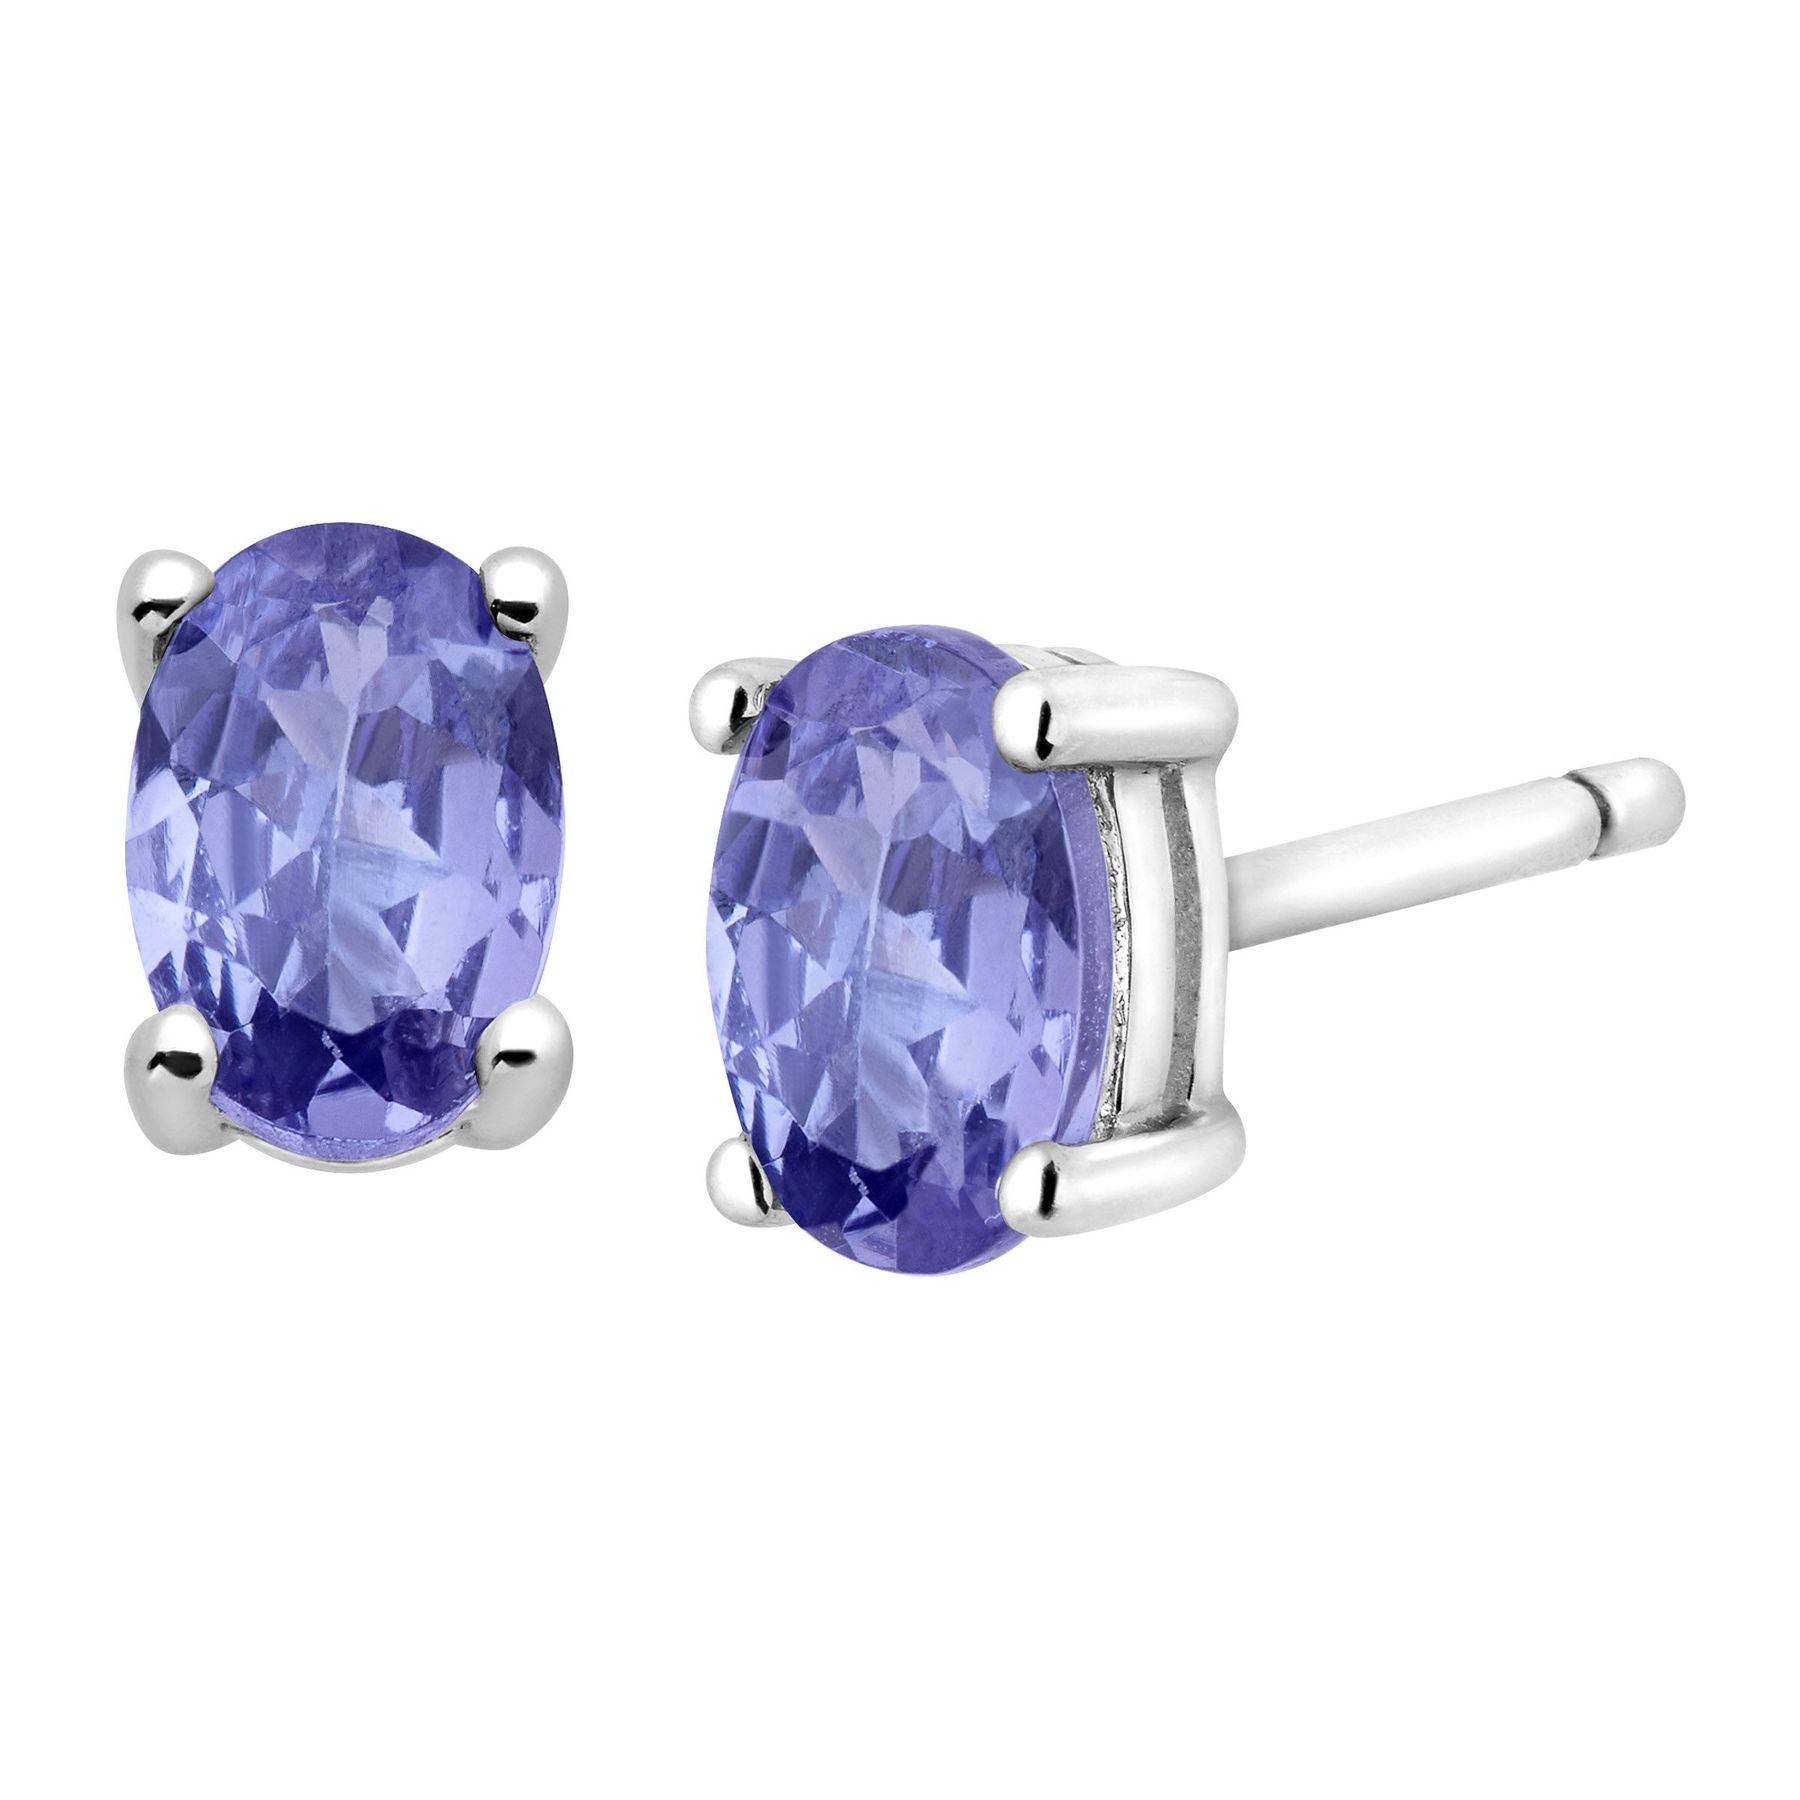 price prices collection value for jewelry of tanzanite sale gemstone